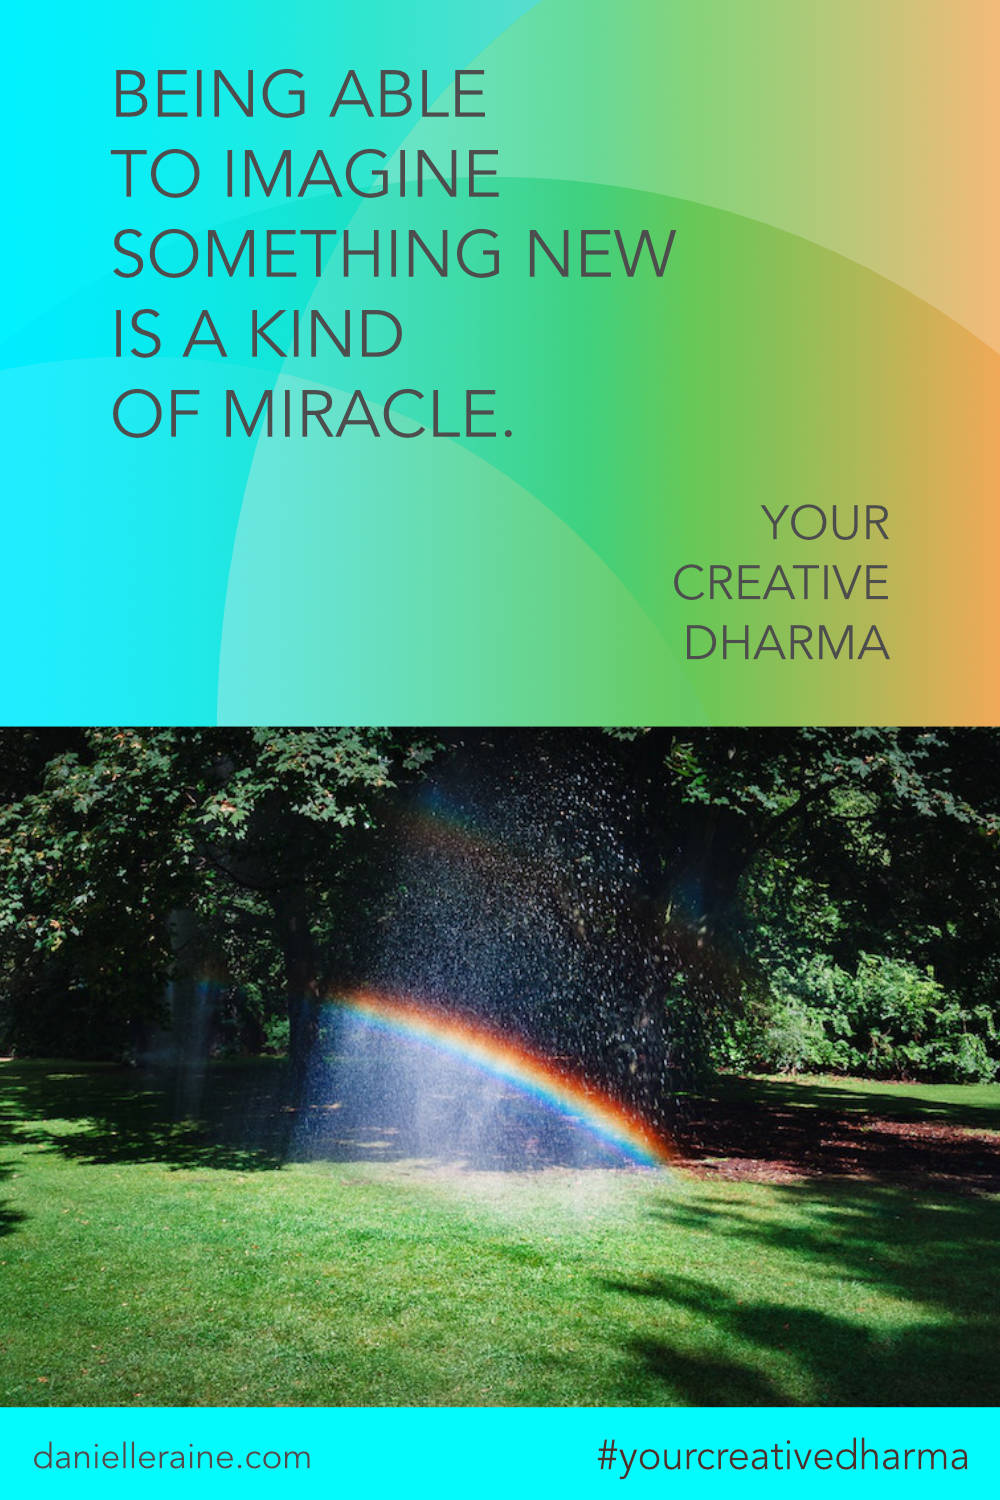 Your Creative Dharma imagine something new miracles